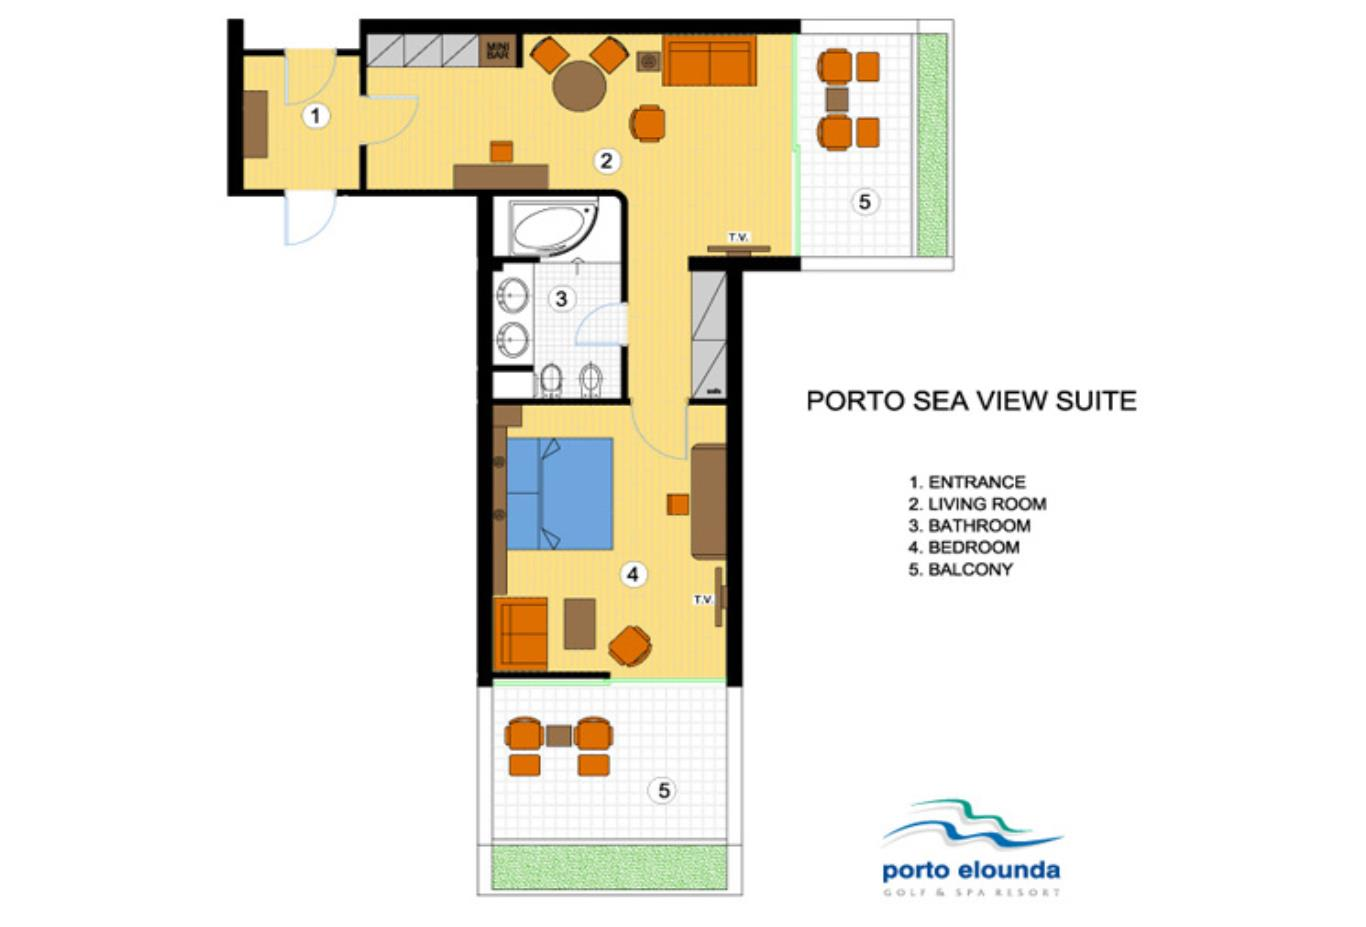 Porto Sea View Suite floorplan